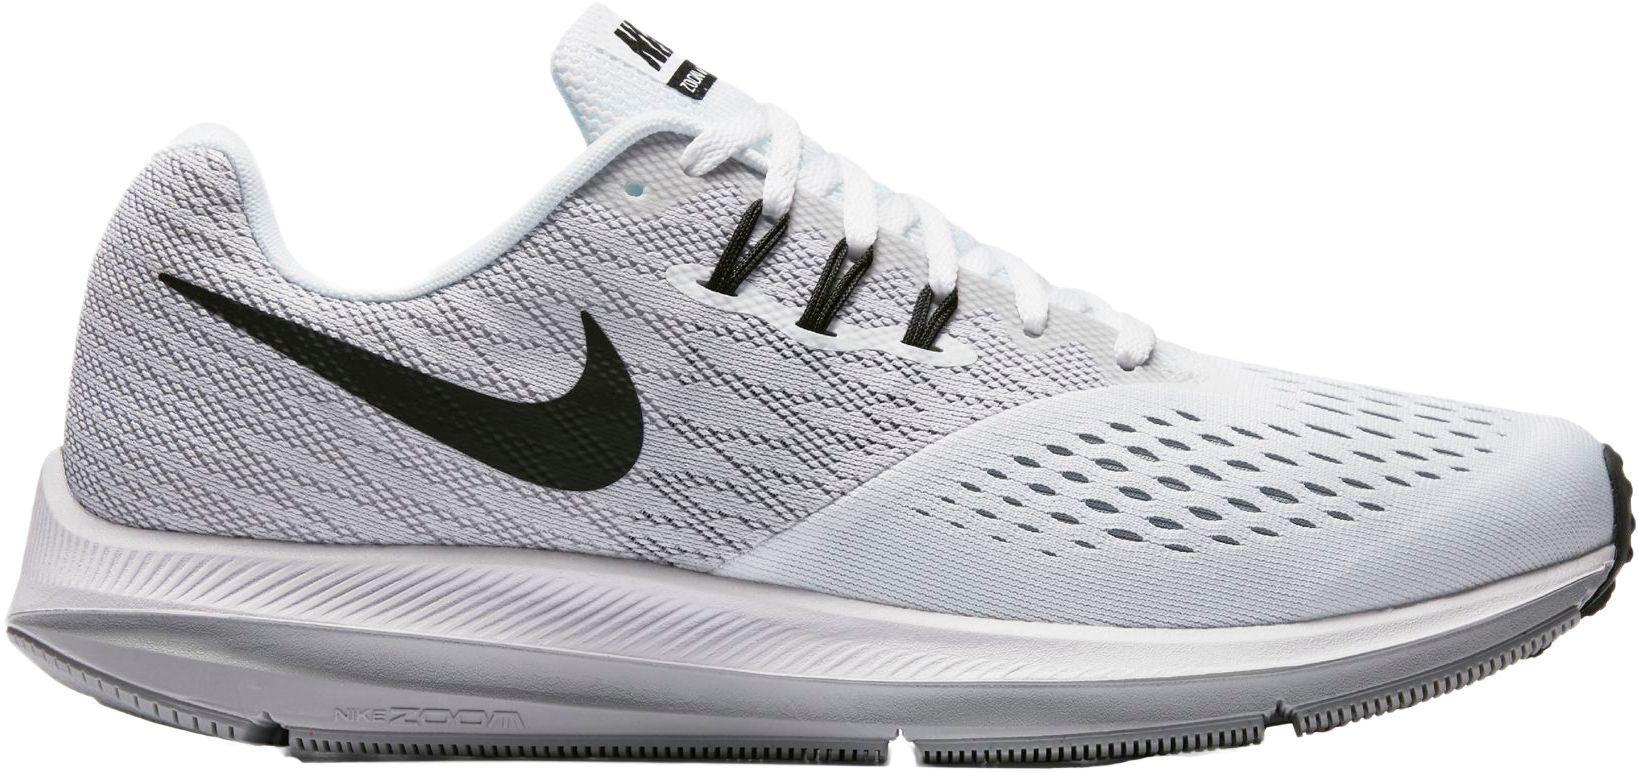 82bed3ed75a Lyst - Nike Air Zoom Winflo 4 Running Shoes in White for Men